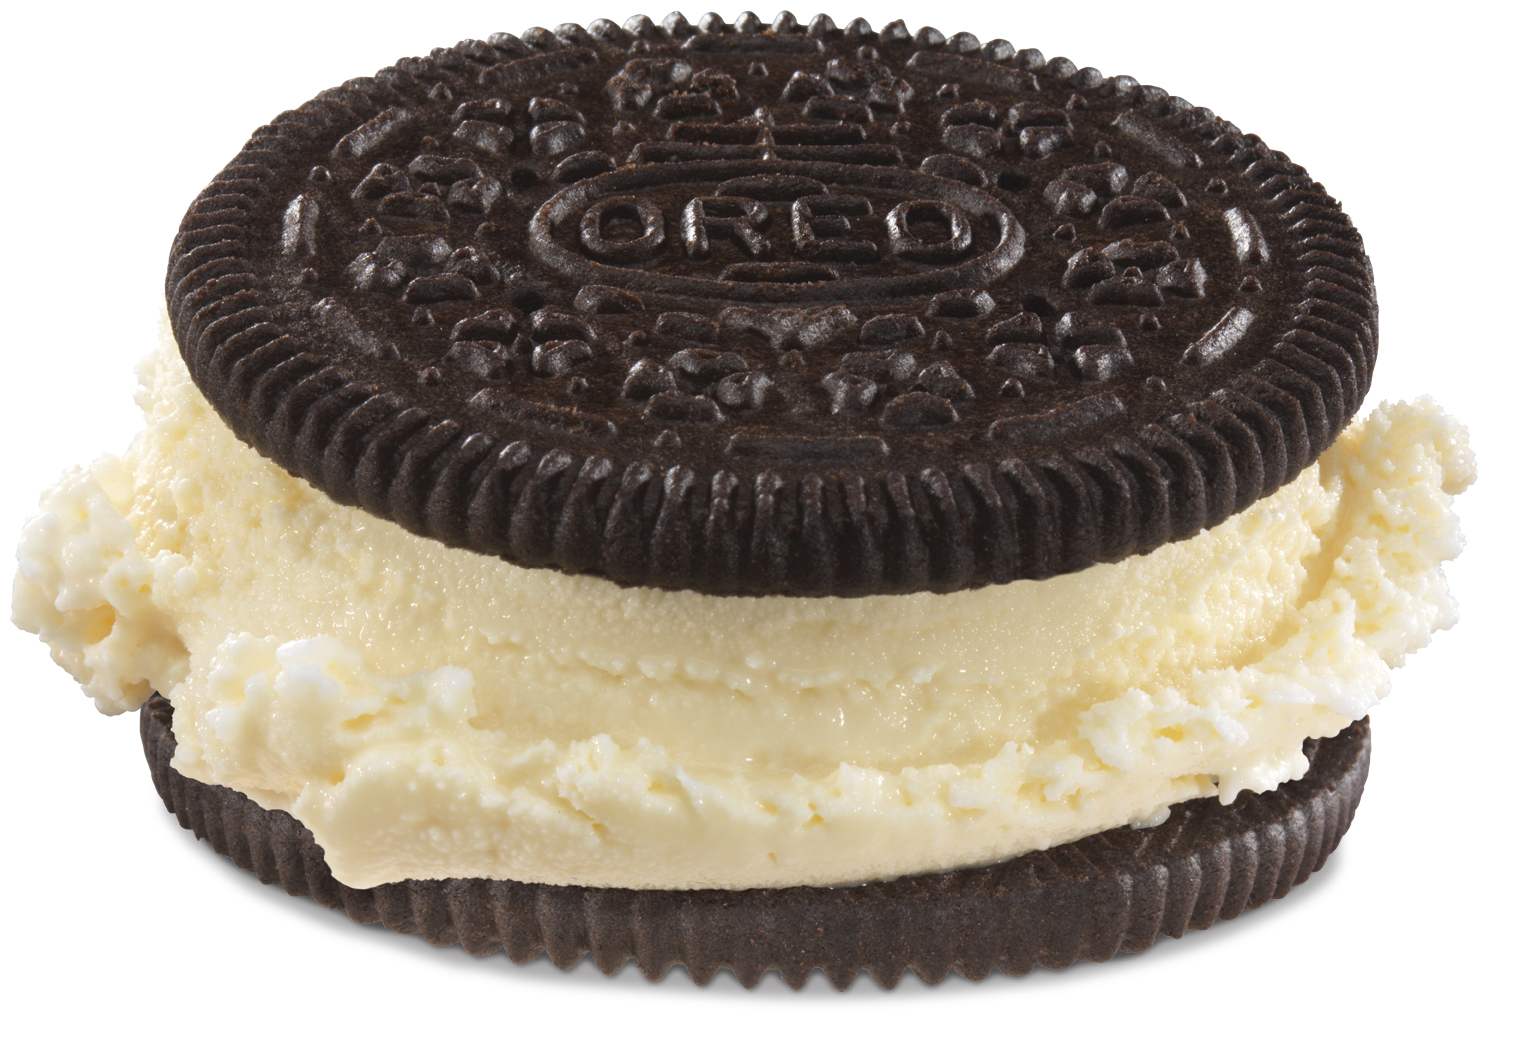 The new Hand-Scooped Ice Cream Sandwich is now available at Carl's Jr.